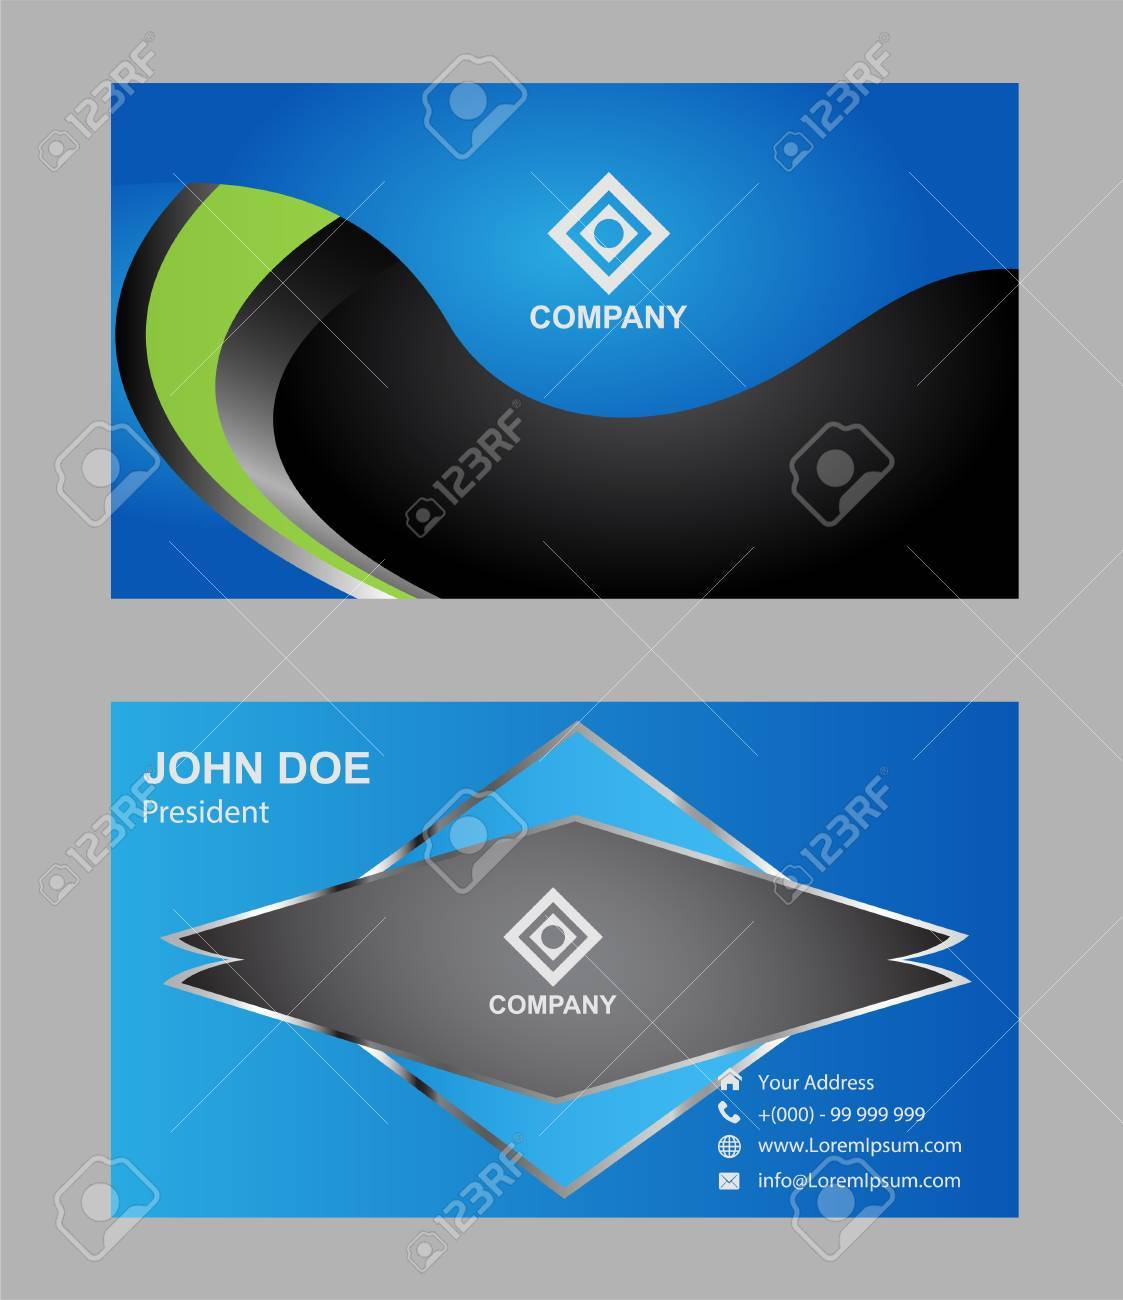 Modern, Simple & Luxury Standard Business Card Design With Sharp ...